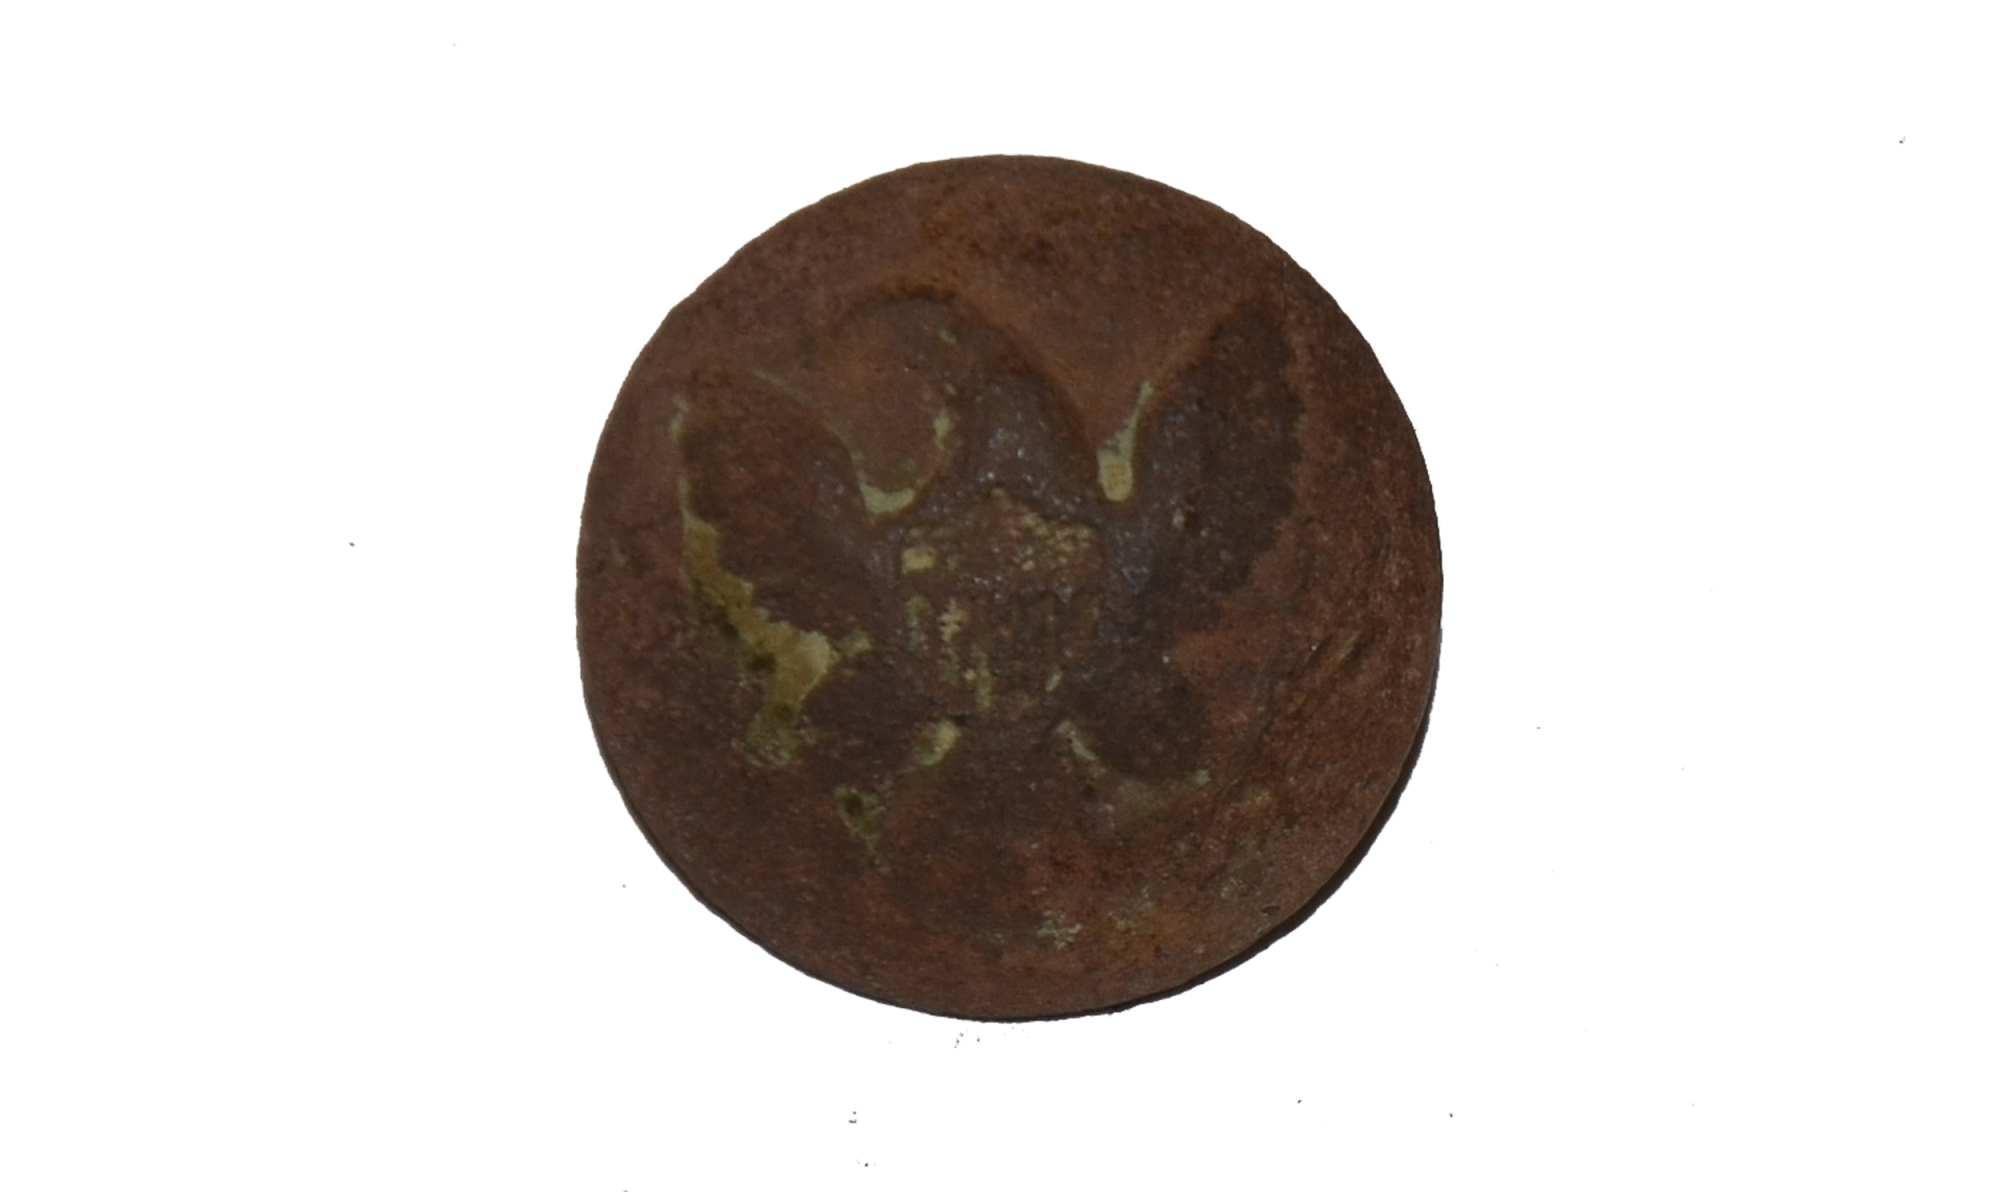 US GENERAL SERVICE EAGLE JACKET BUTTON RECOVERED ON CULP'S HILL, GETTYSBURG